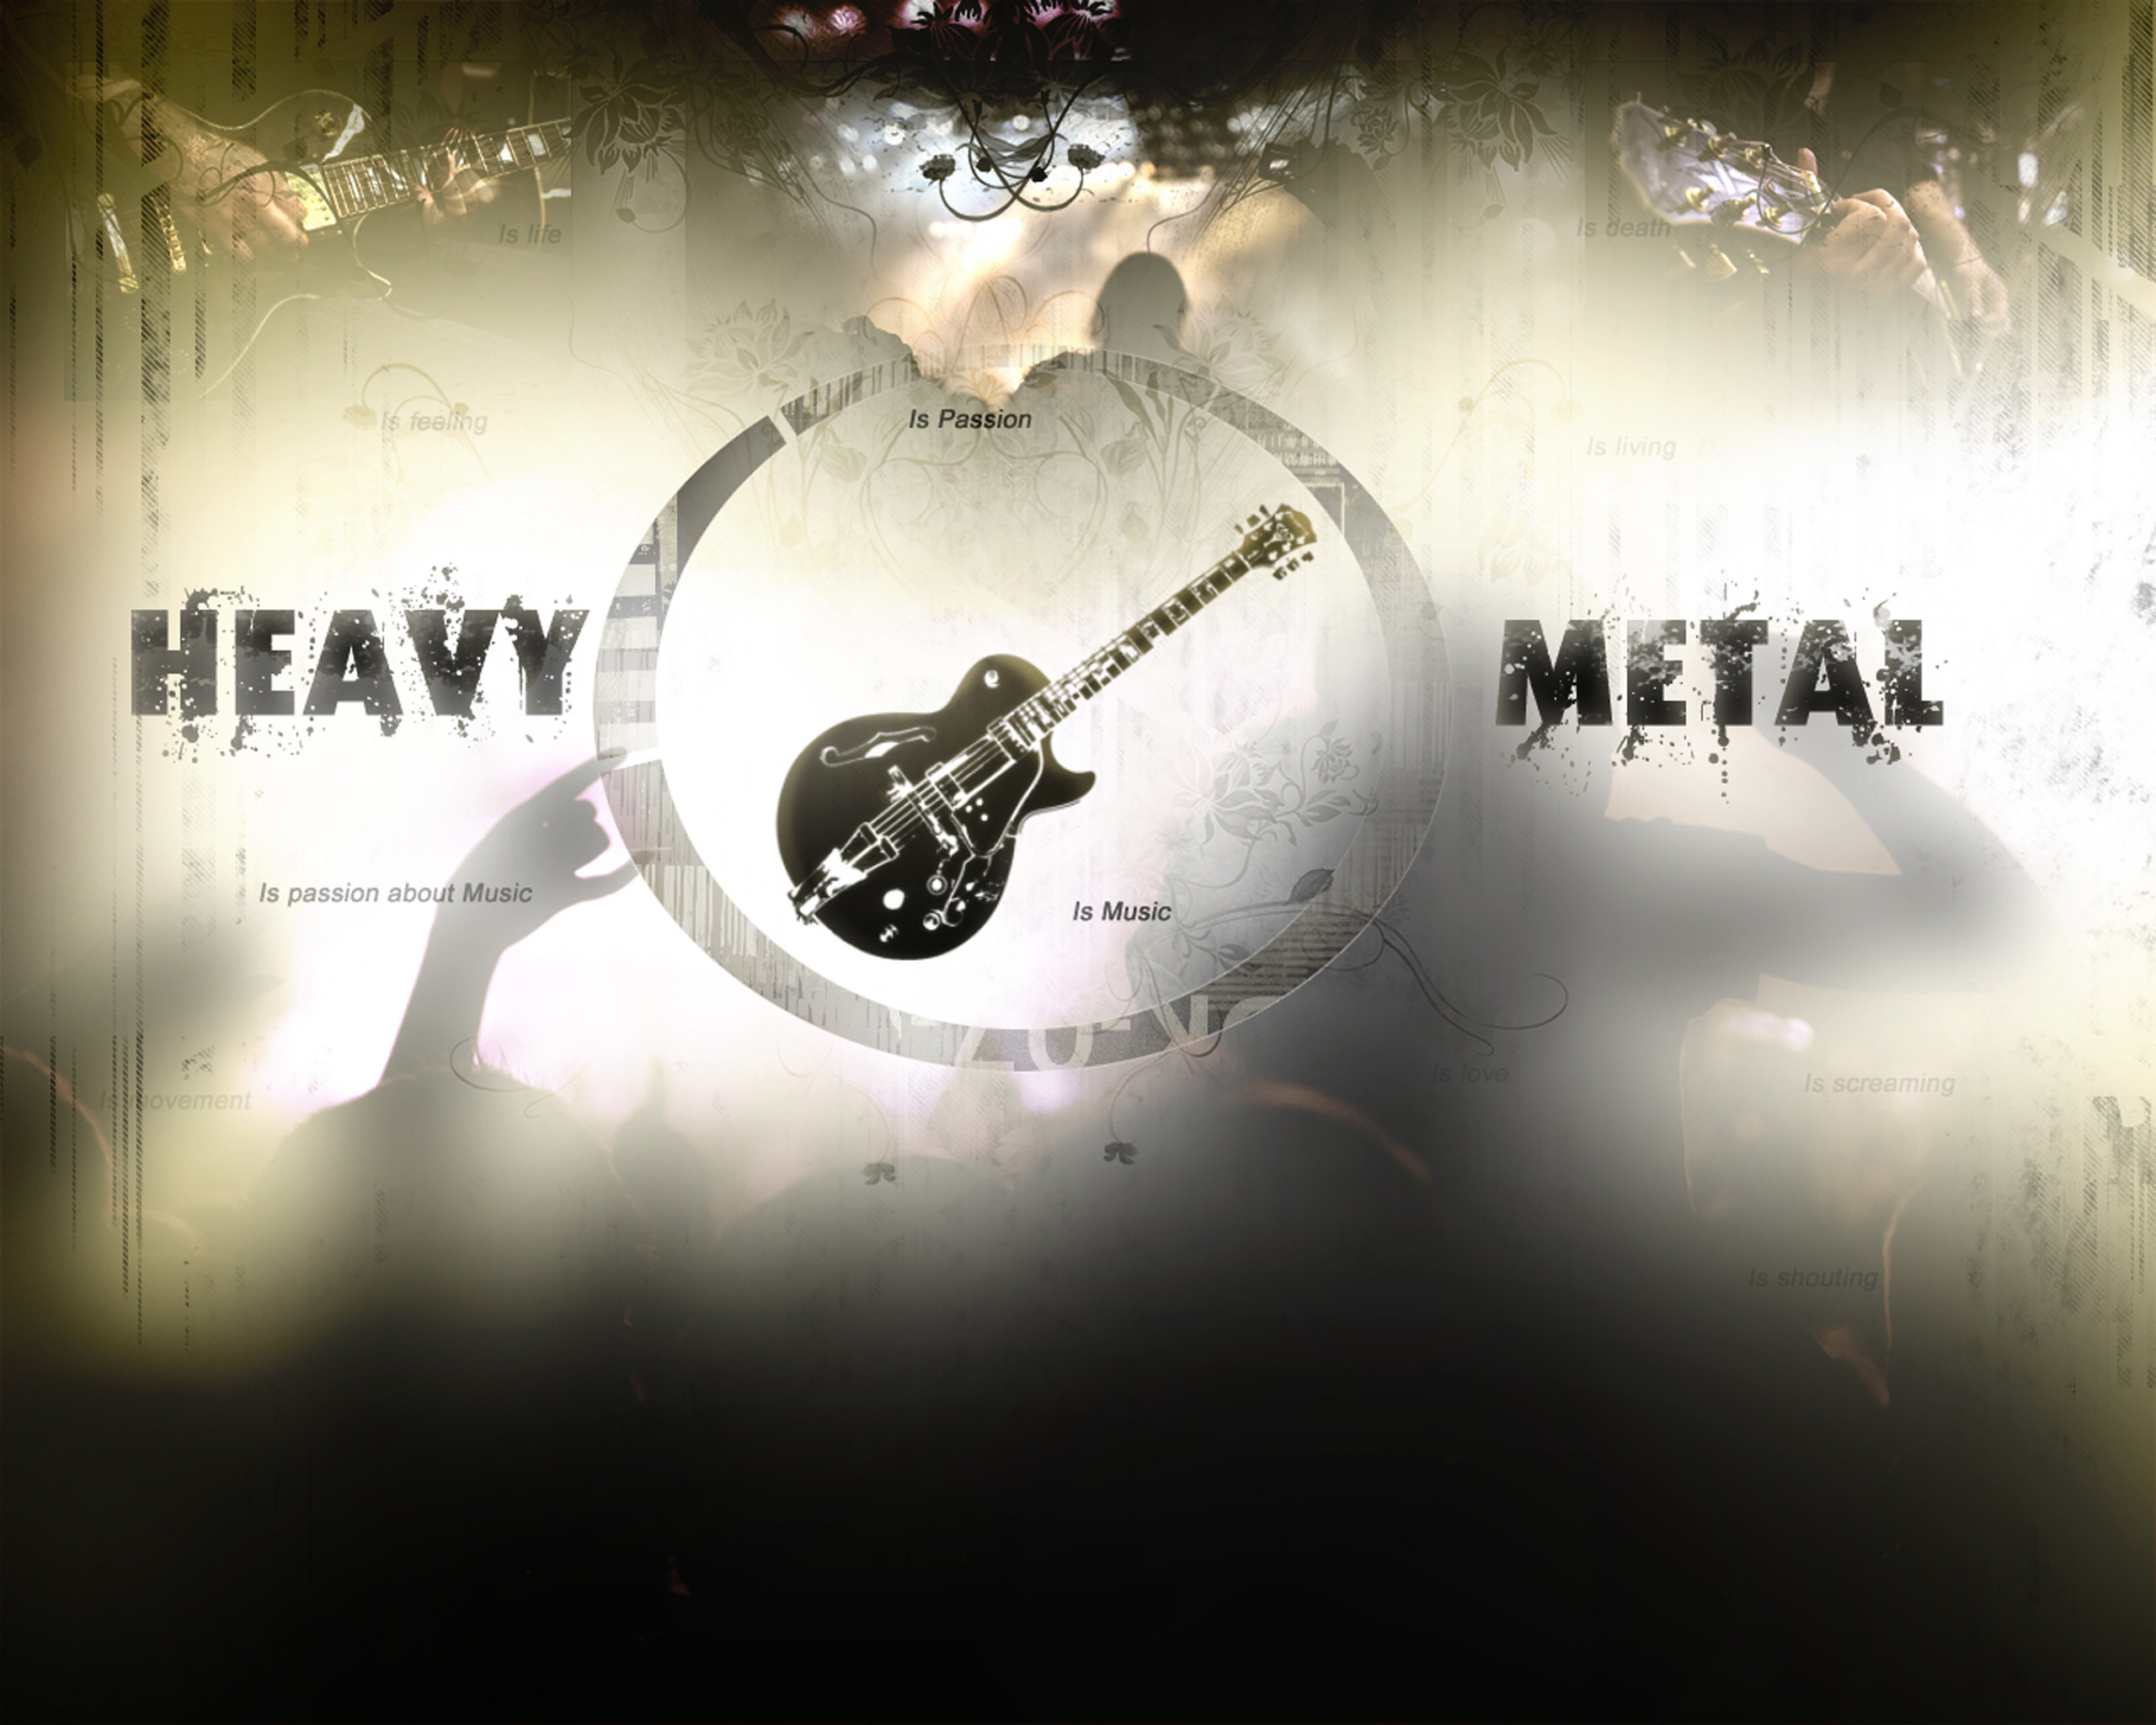 Гиганты HEAVY METAL heavy, метал, музыка